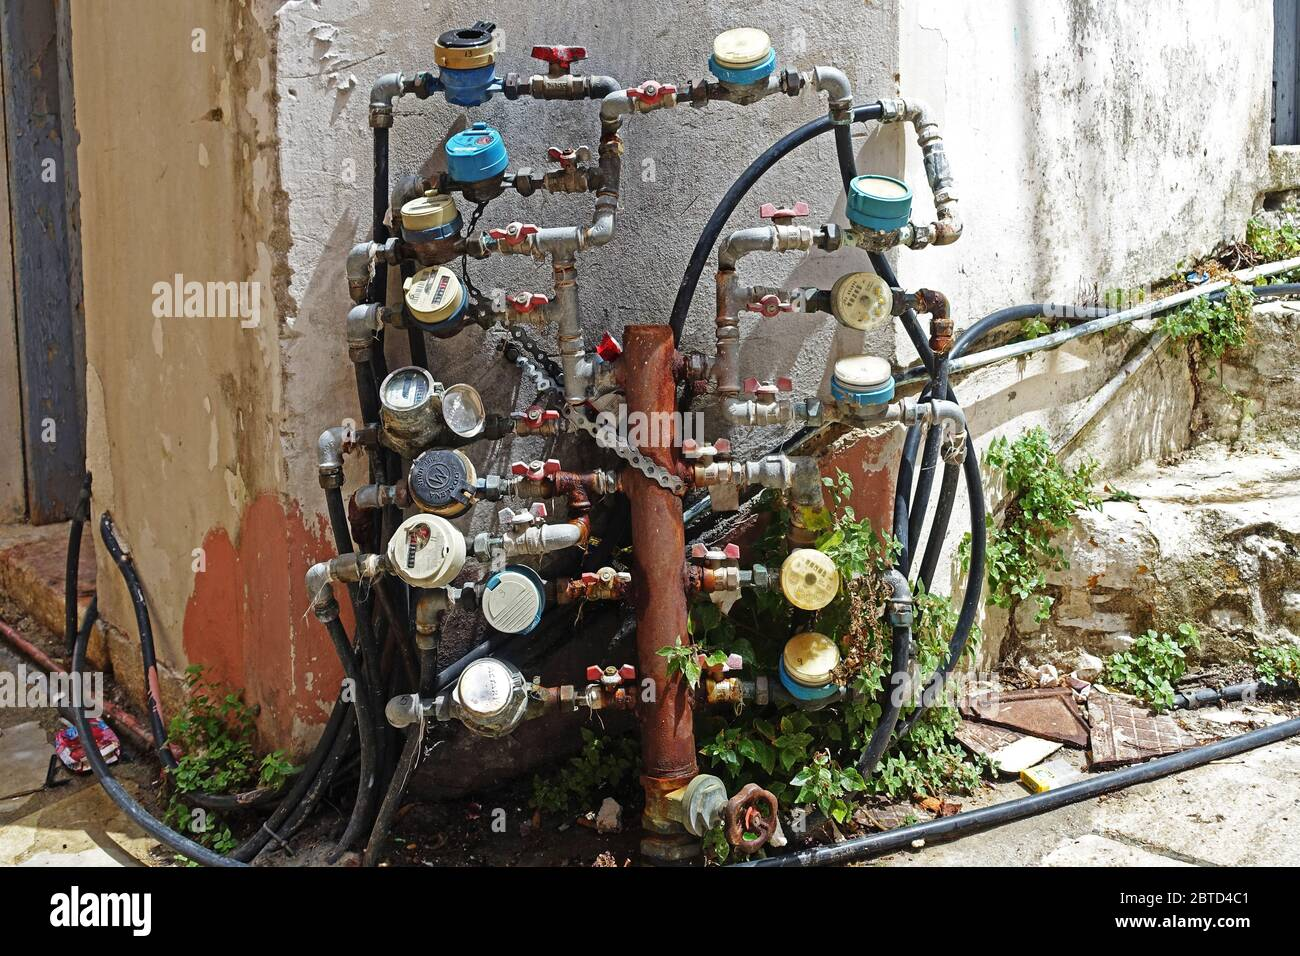 Water Meter Measure High Resolution Stock Photography and Images - Alamy [ 956 x 1300 Pixel ]